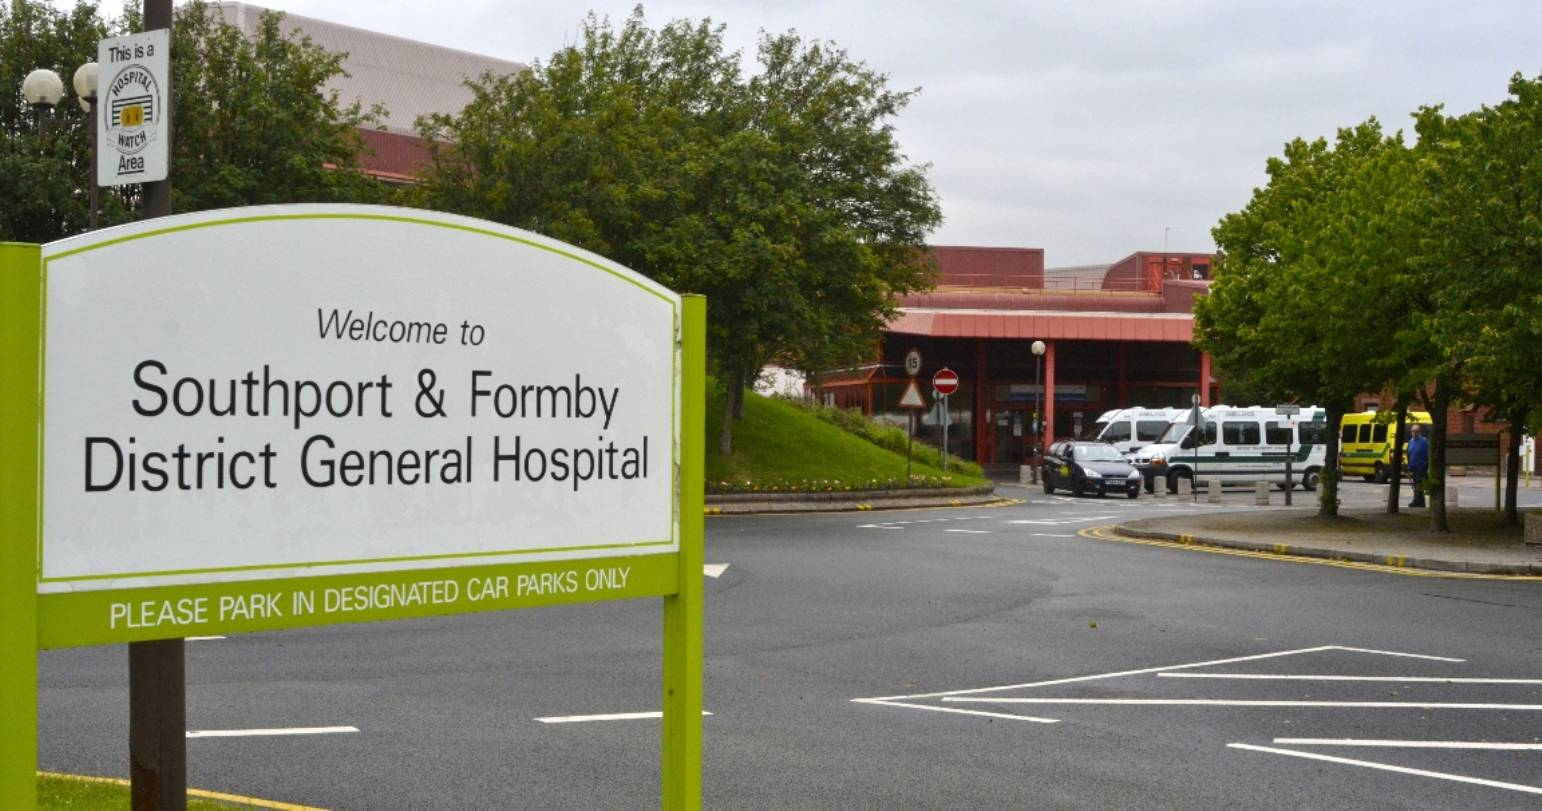 Suspensions saga continues to anger hospital campaigners